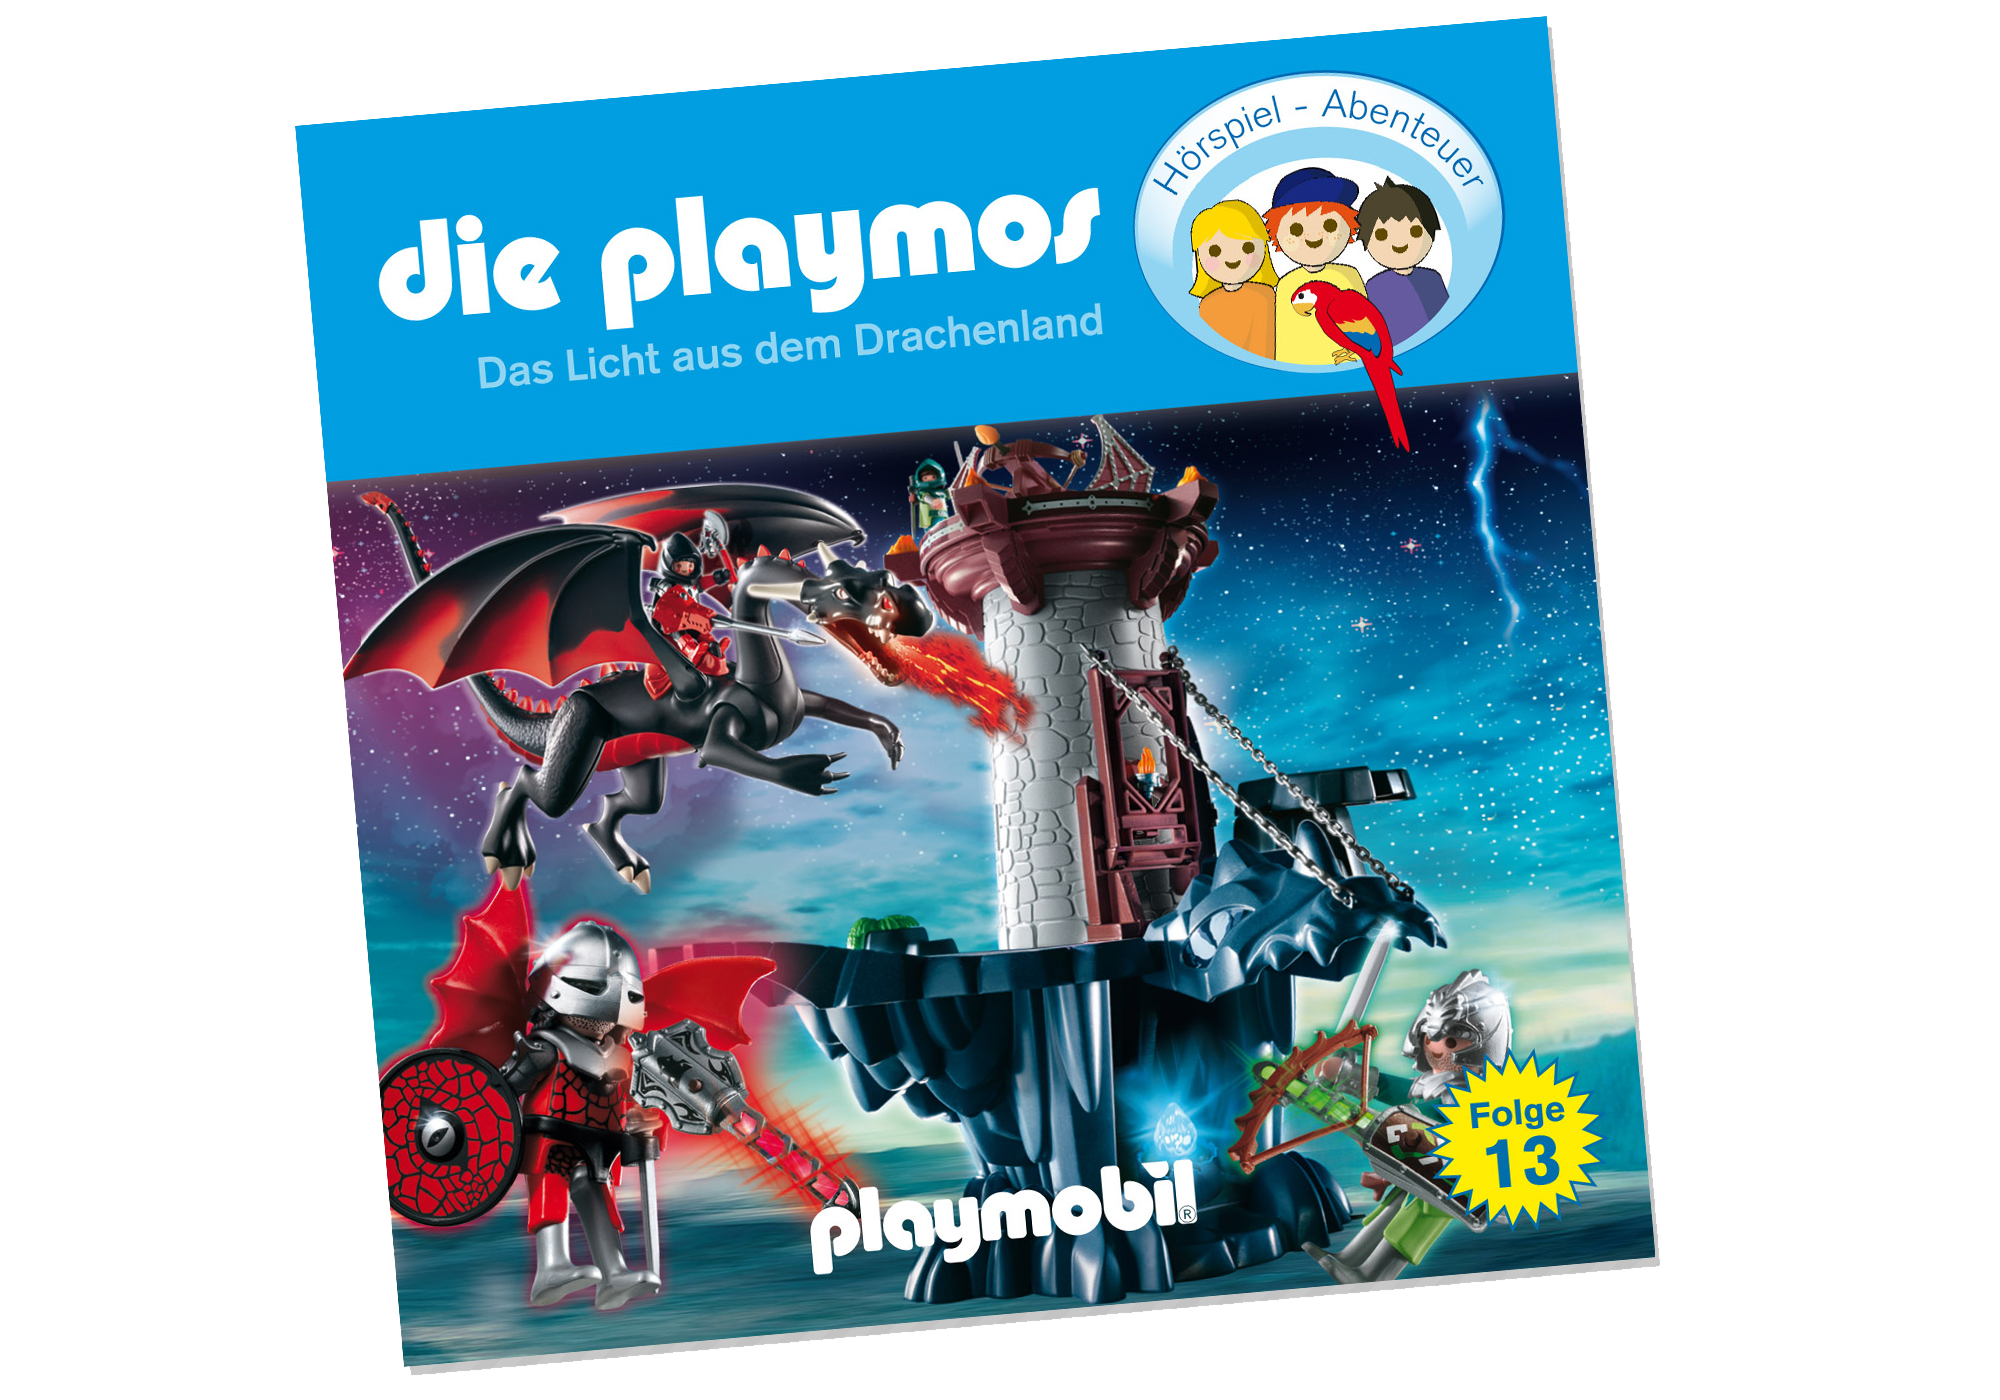 http://media.playmobil.com/i/playmobil/80243_product_detail